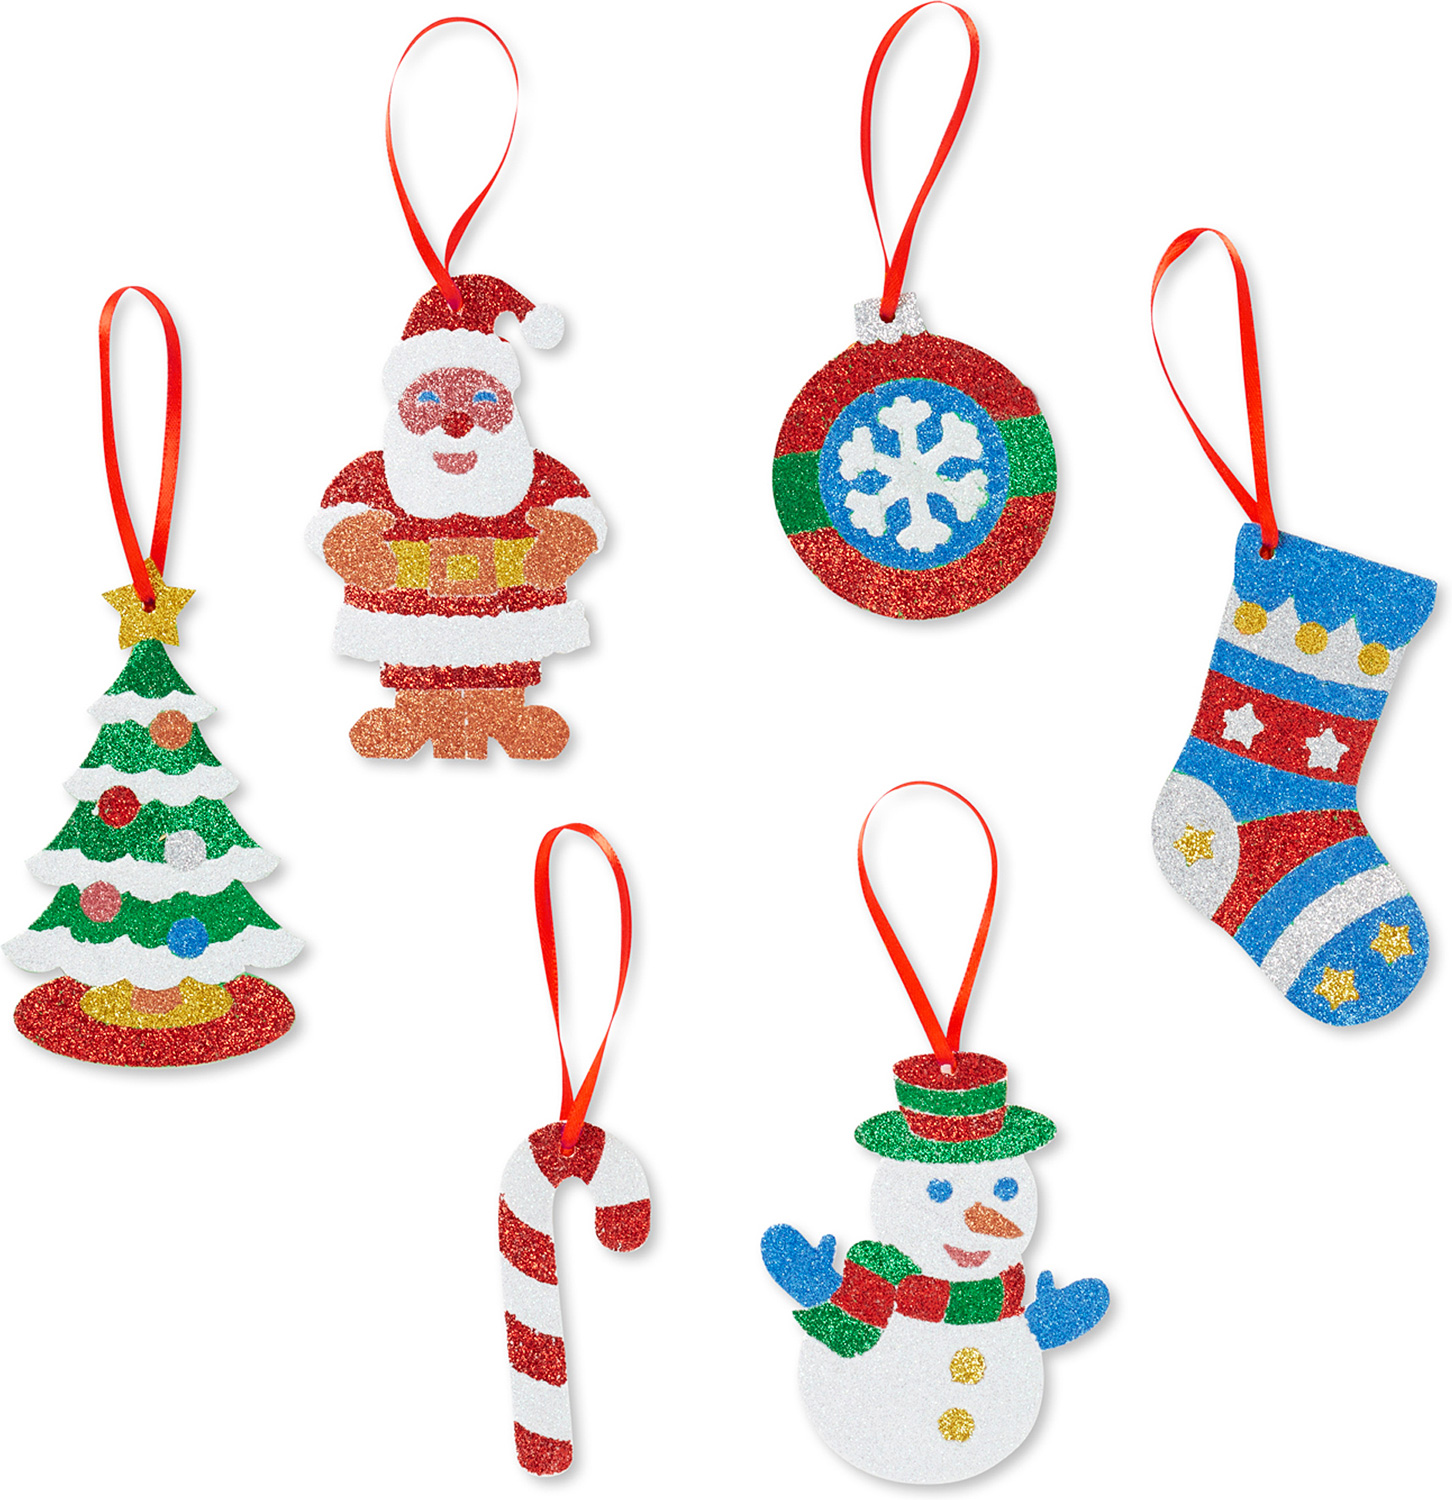 Christmas Ornaments - Snickelfritz Toys